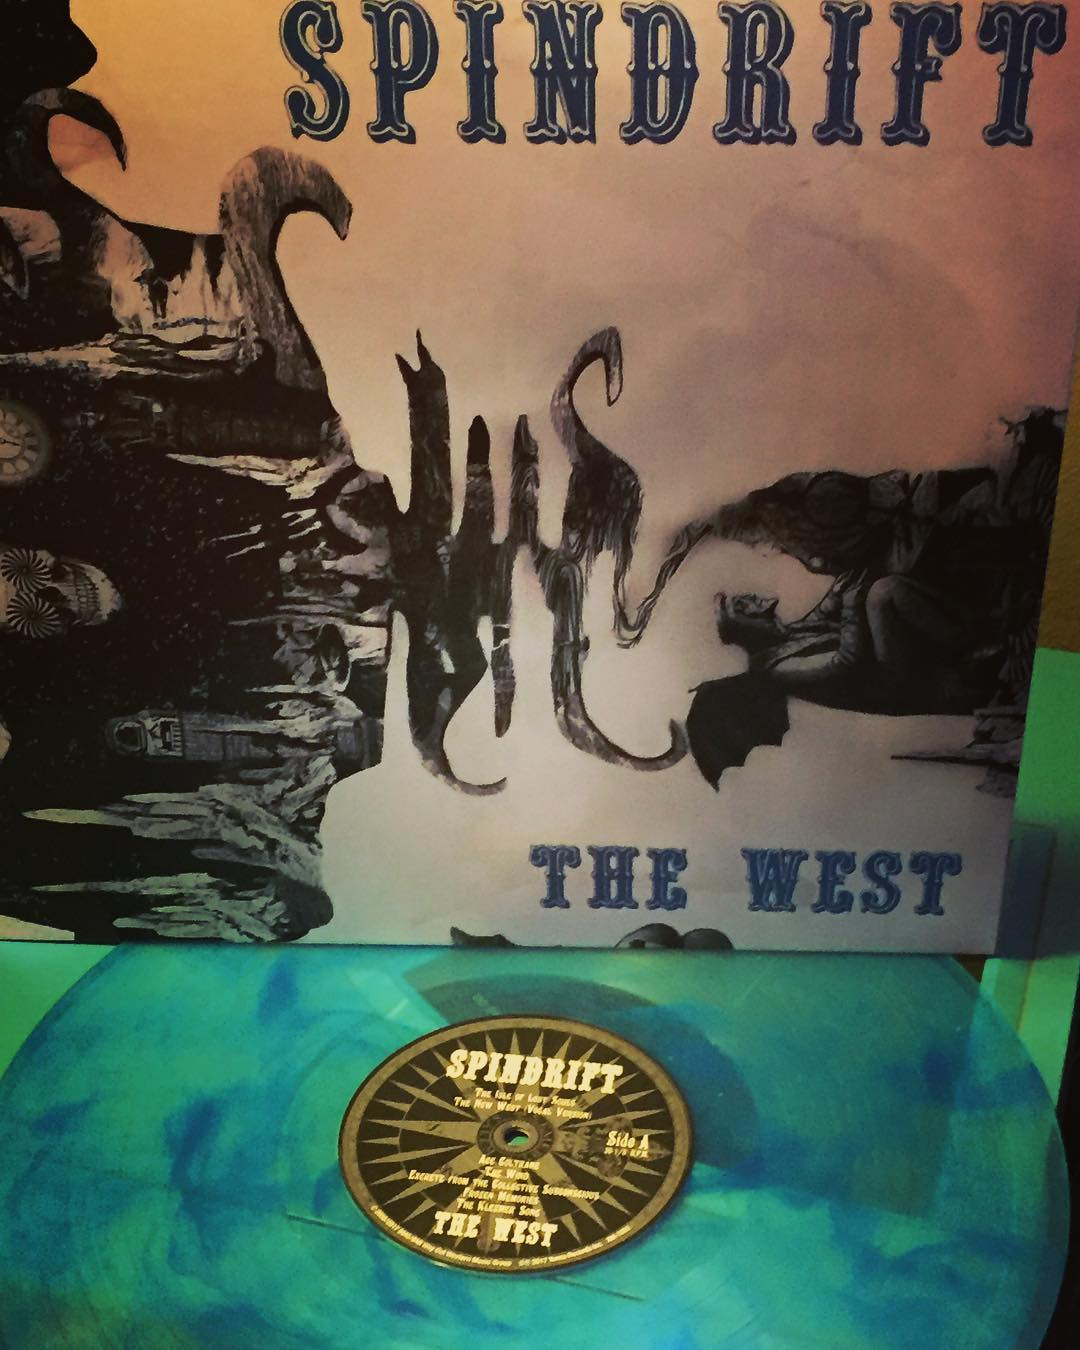 NOW in trippy blue vinyl! THE WEST LP remastered by @spindriftwest @dennismoodymusic • Released by @xemu_records_official #collectorsedition #spindrift #thewestisthebest